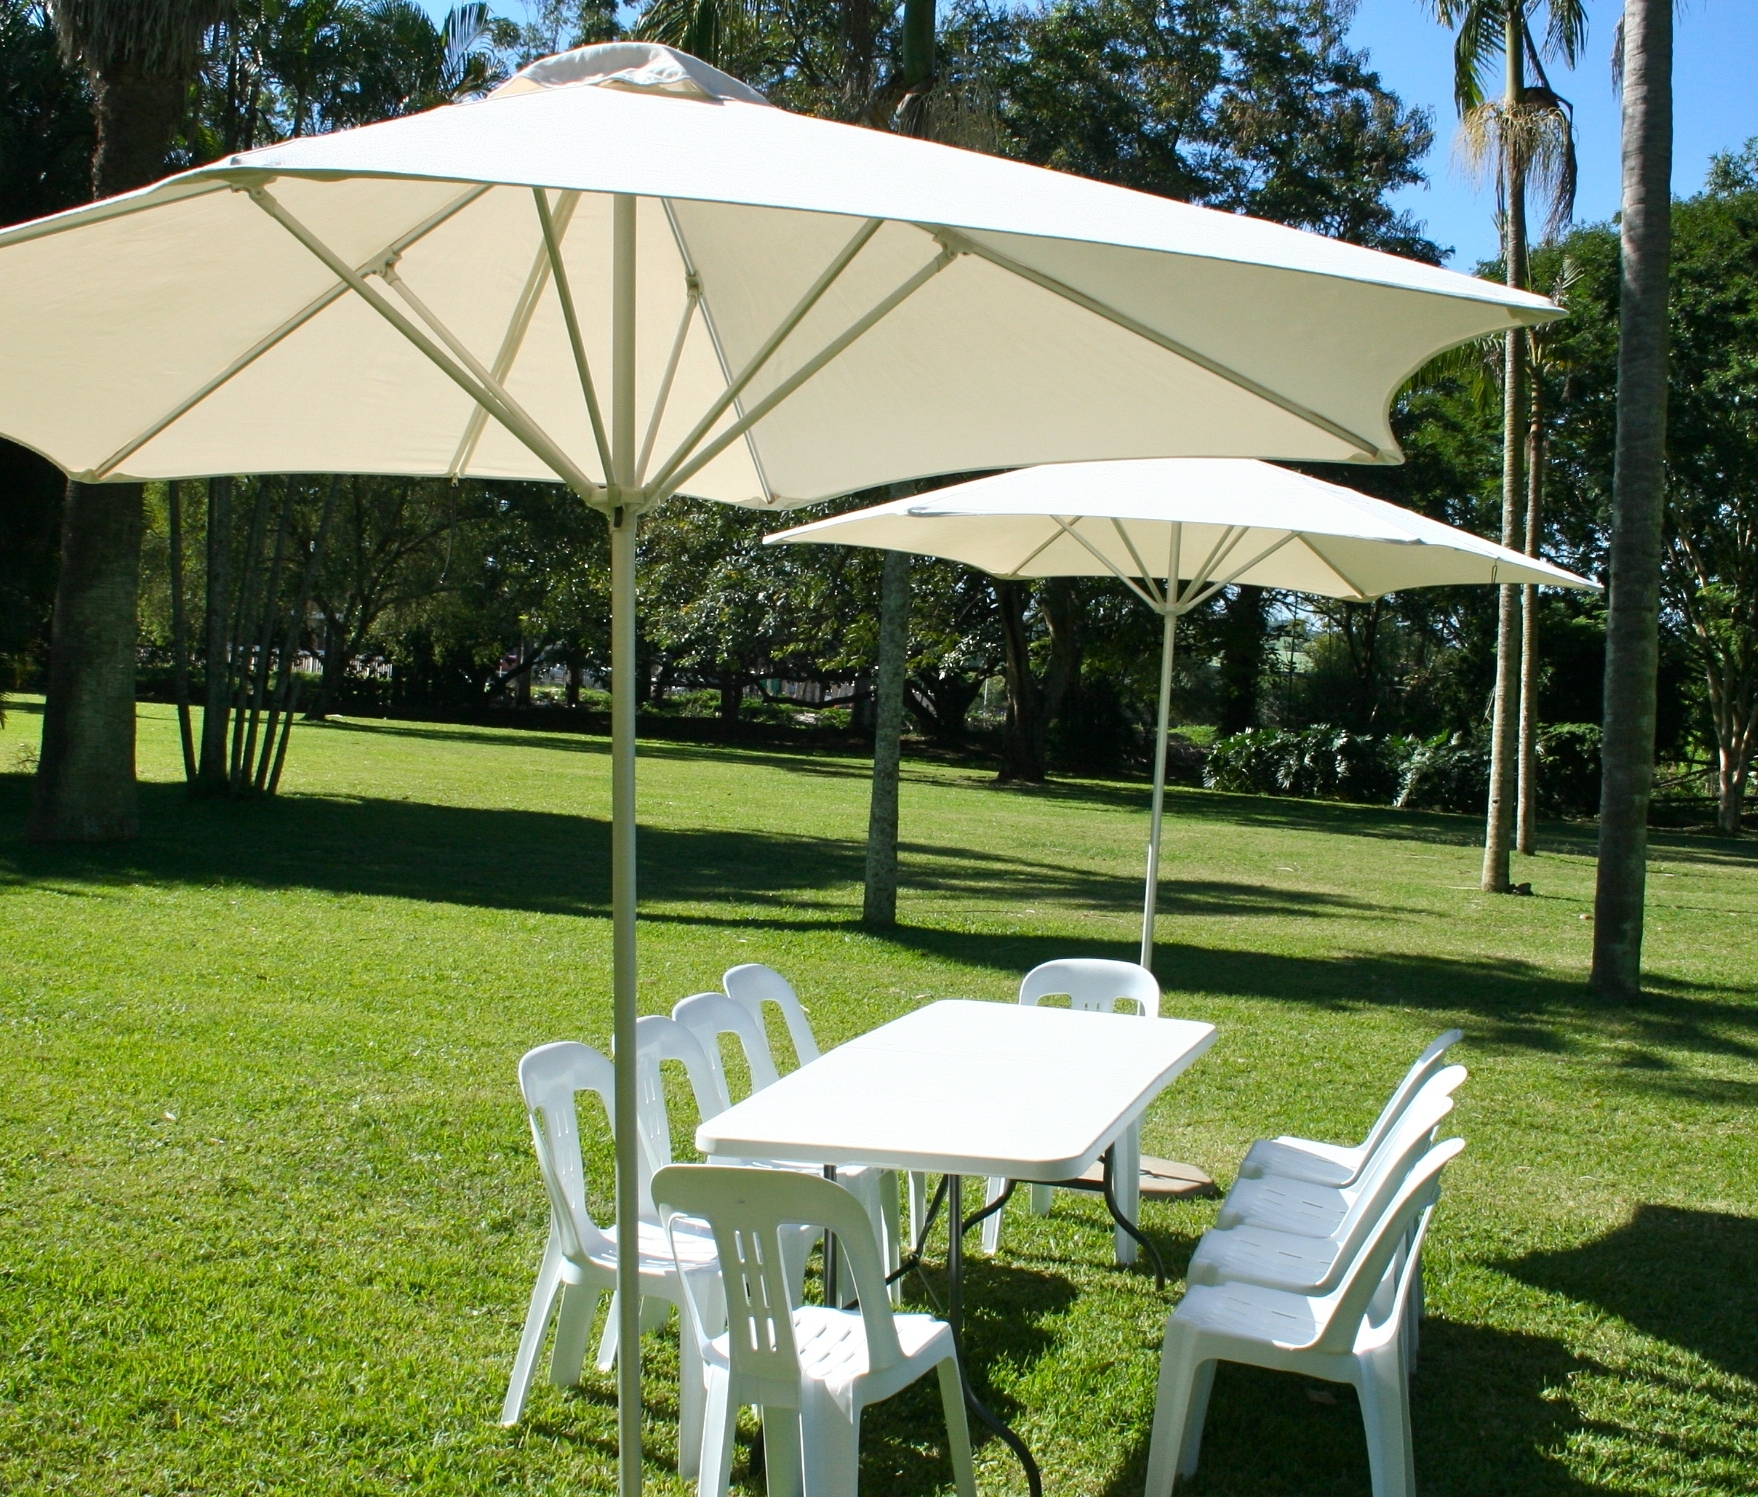 Outdoor Patio Umbrella Rental Umbrella Hire With 2018 Outdoor Patio Umbrellas (View 13 of 20)